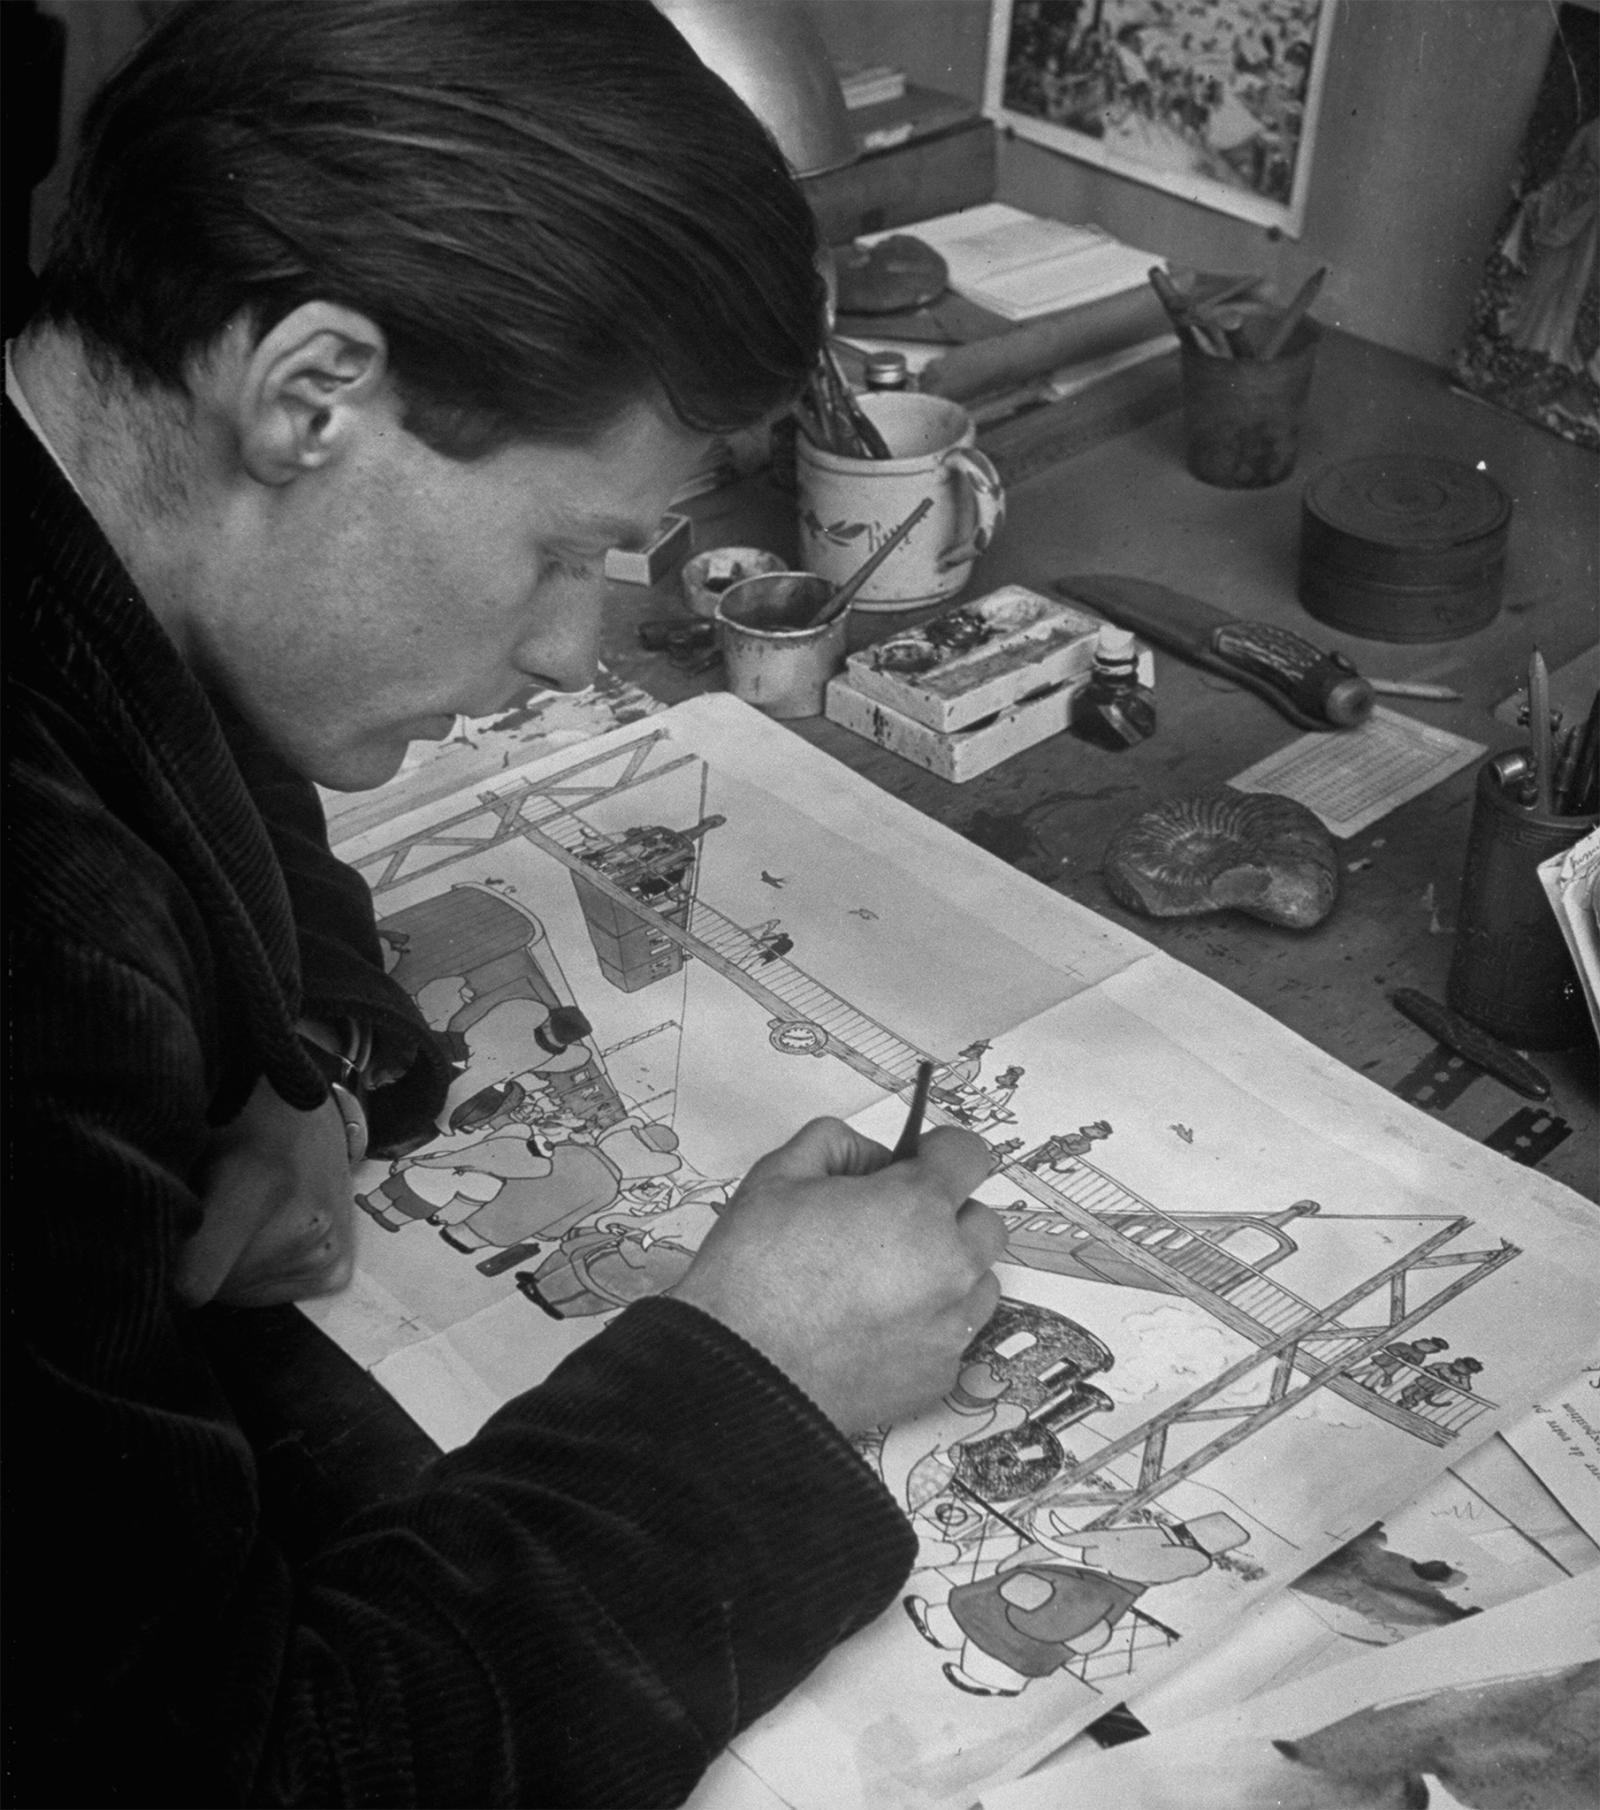 Young Laurent de Brunhoff at work on Babar